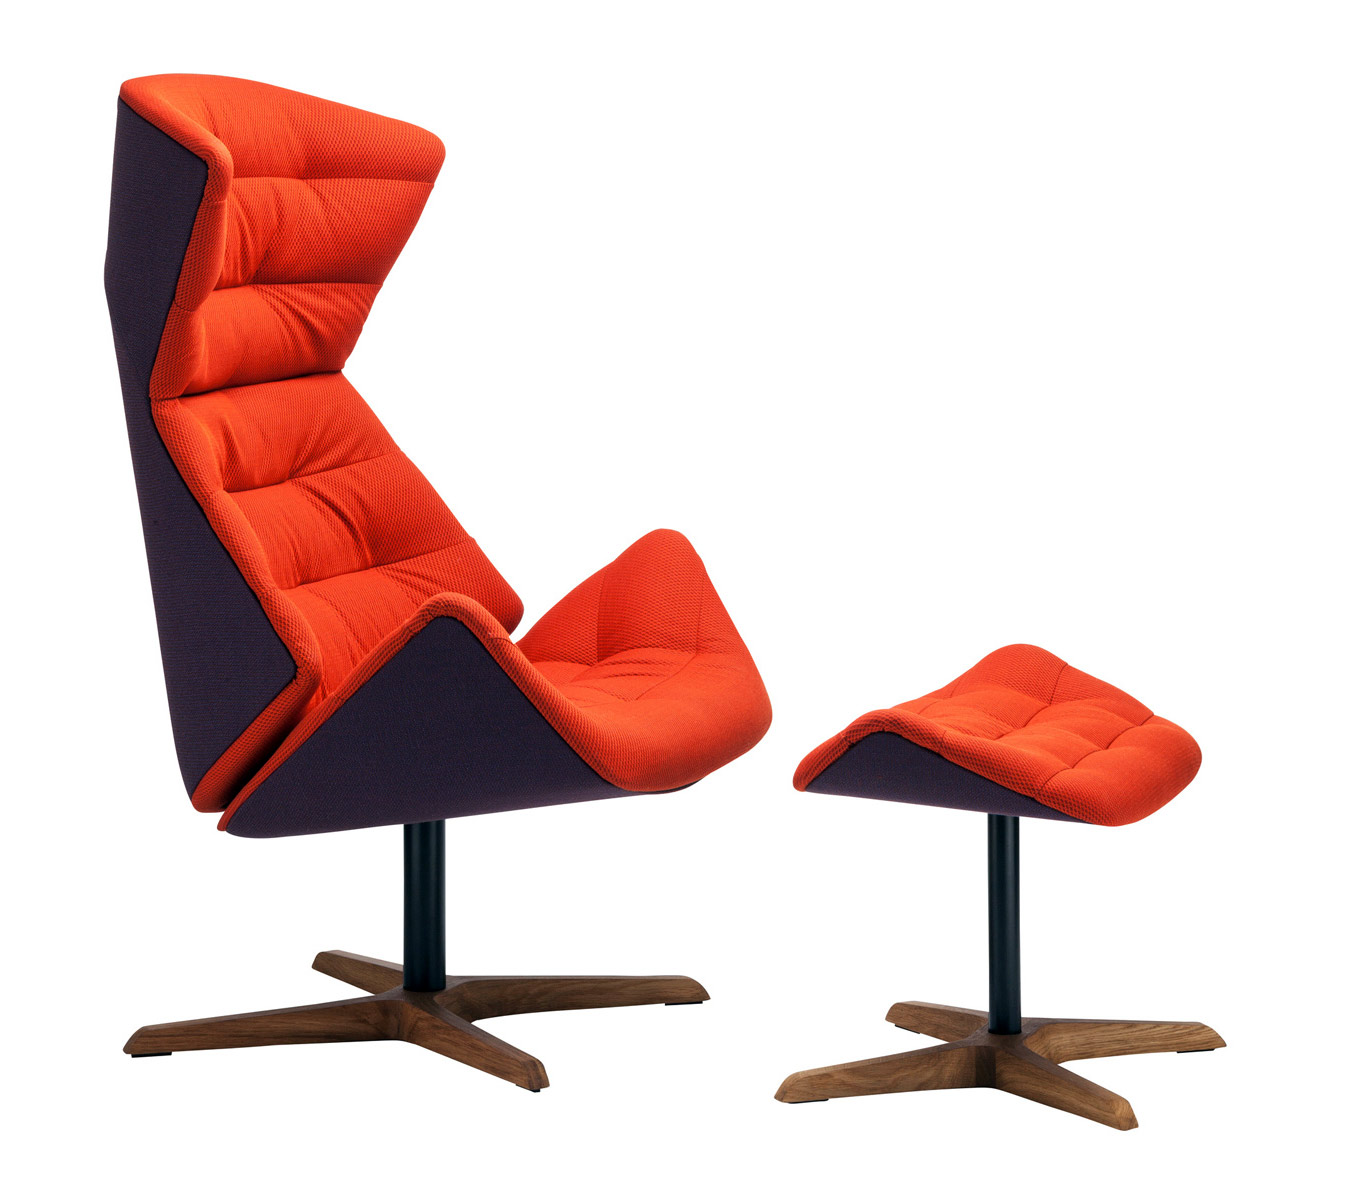 Poltrona lounge 808, Formstelle, Thonet